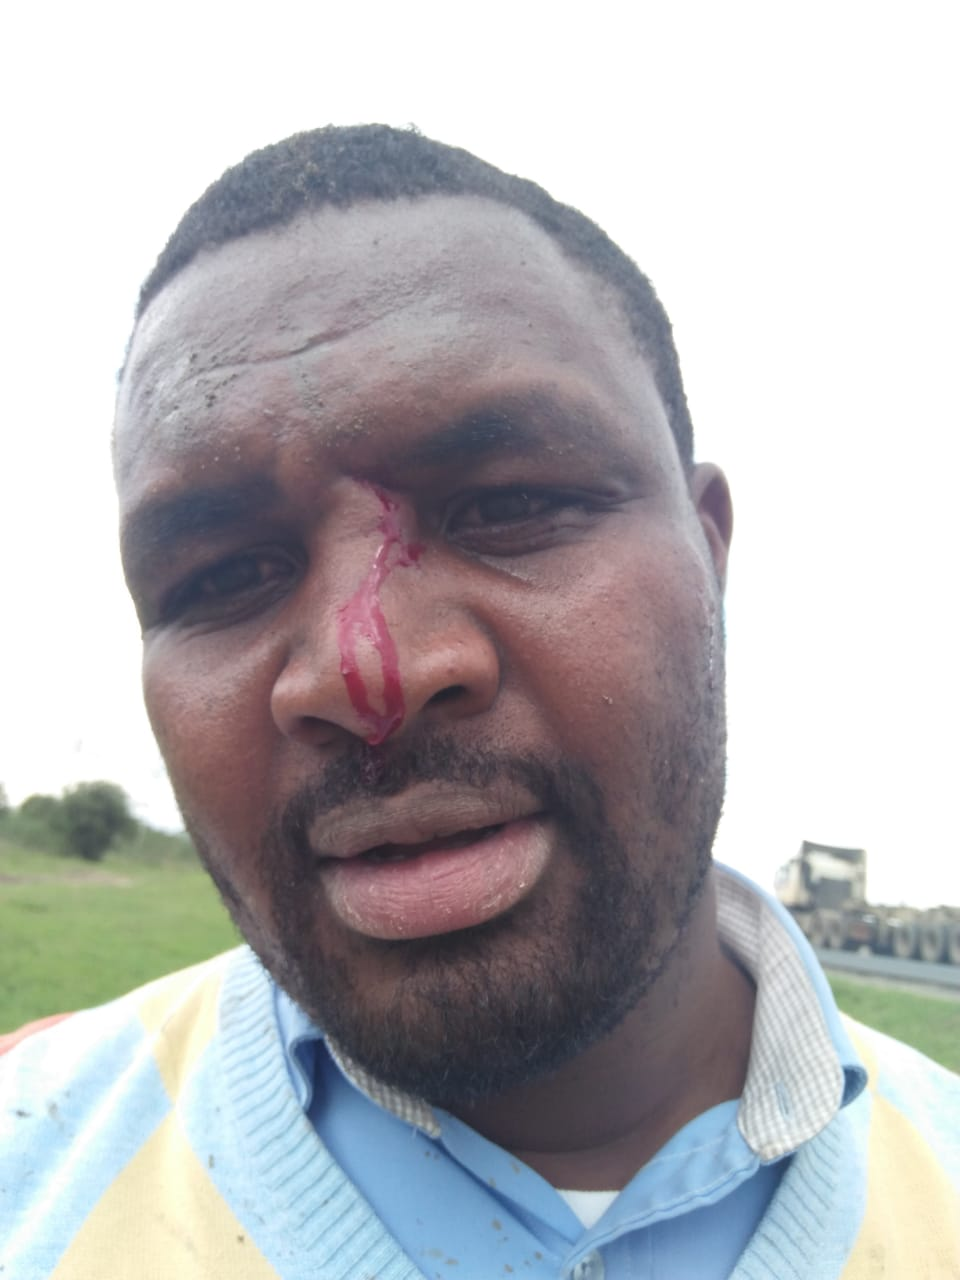 WhatsApp Image 2019 06 03 at 4.44.54 PM - Photos of KTN journalist attacked by high school students